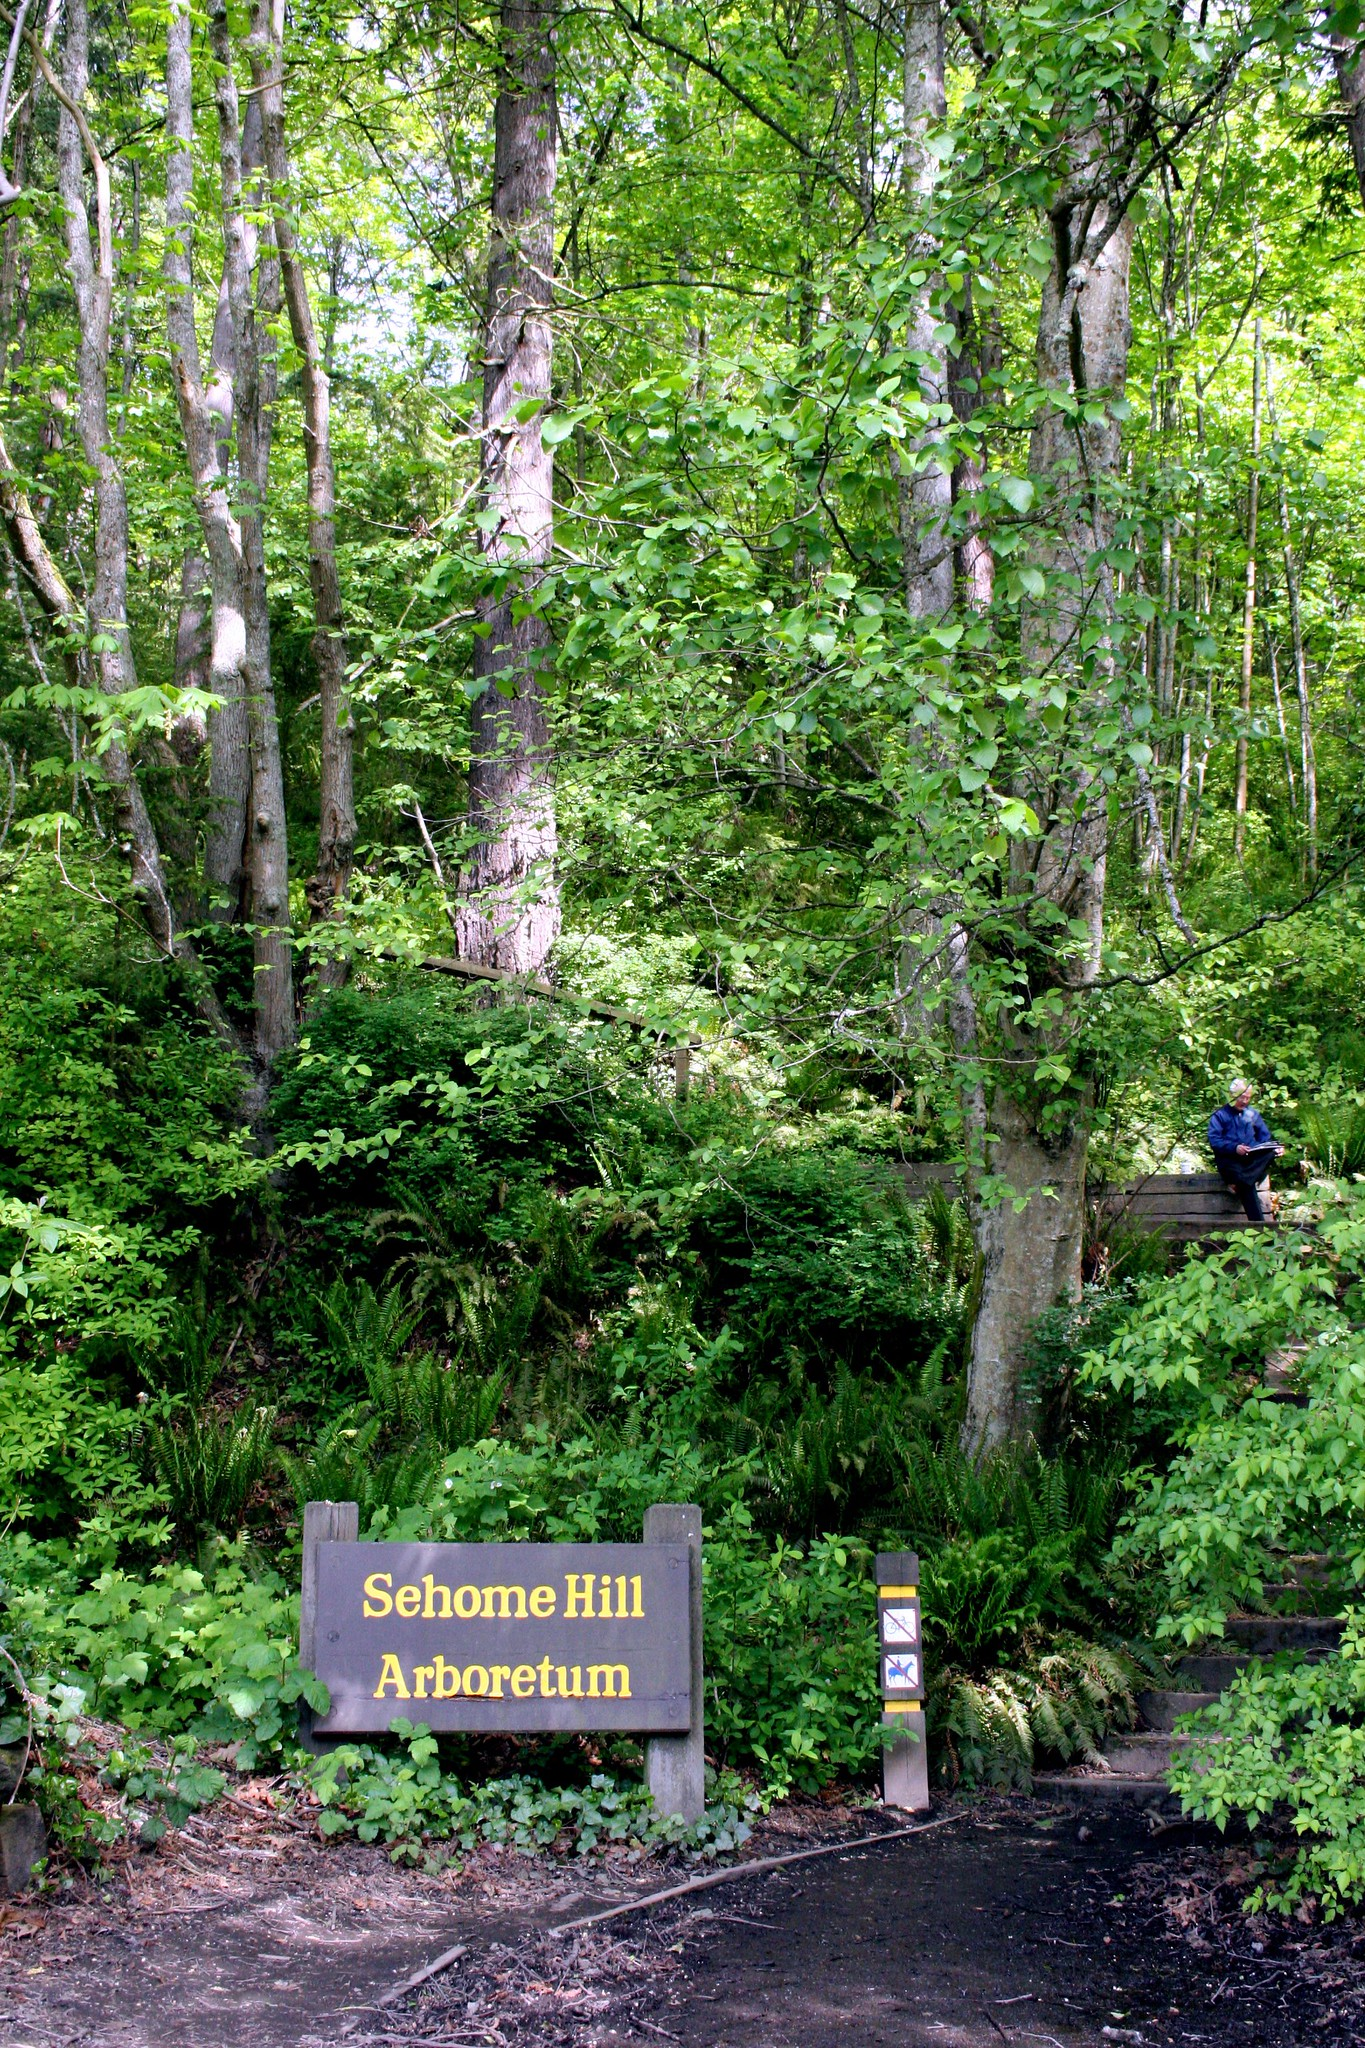 Wooden sign with yellow text that says Sehome Hill Arboretum next to stairs that lead into lush ferns and pine trees.